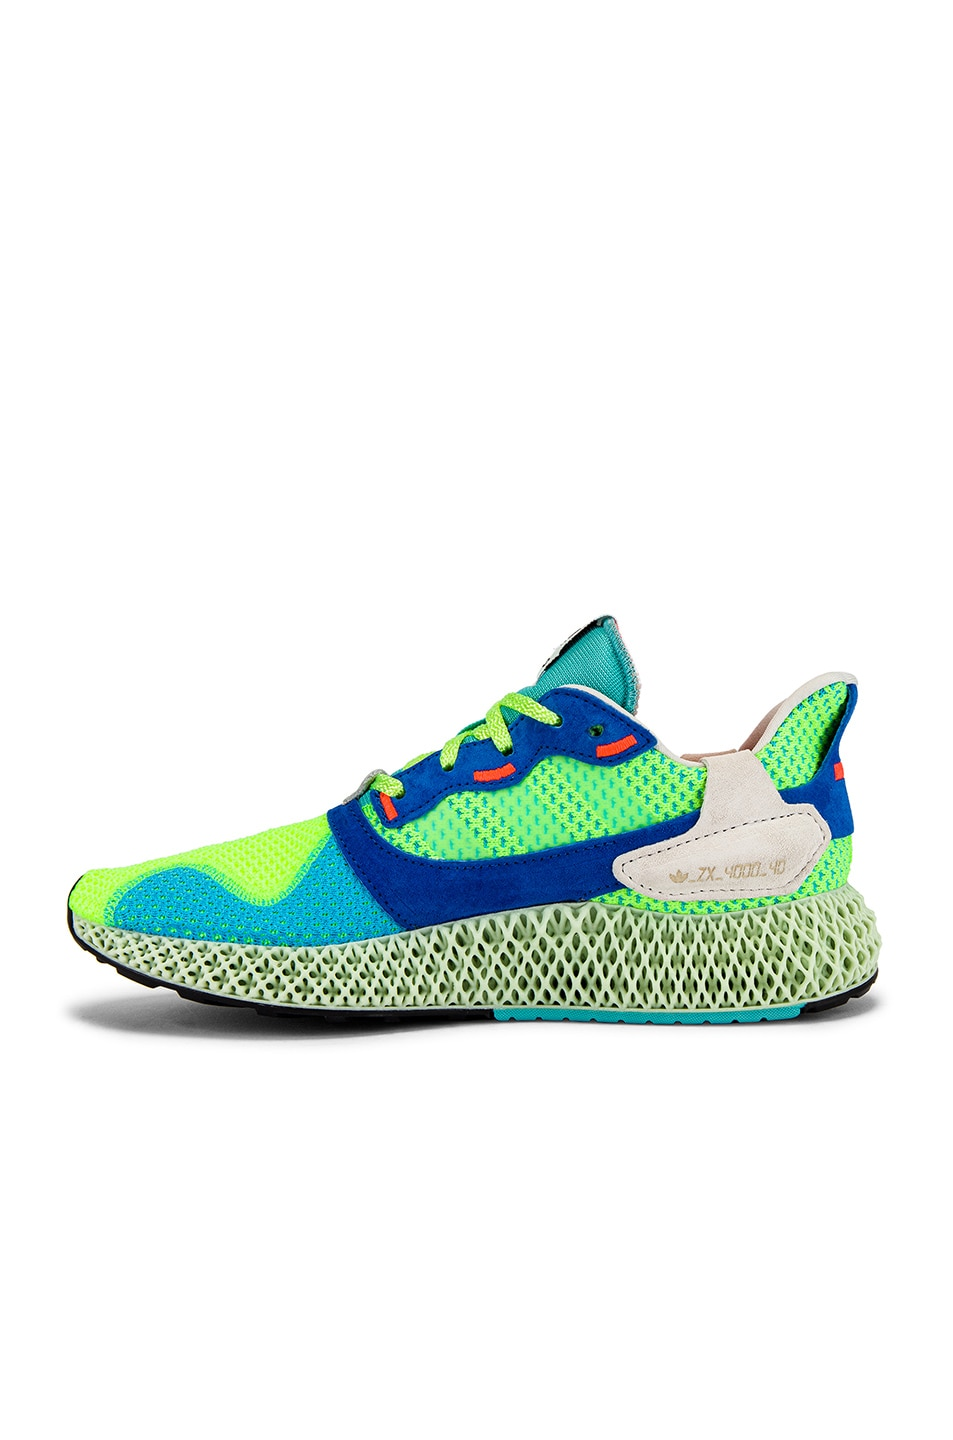 Image 5 of adidas Originals ZX4000 4D Sneaker in